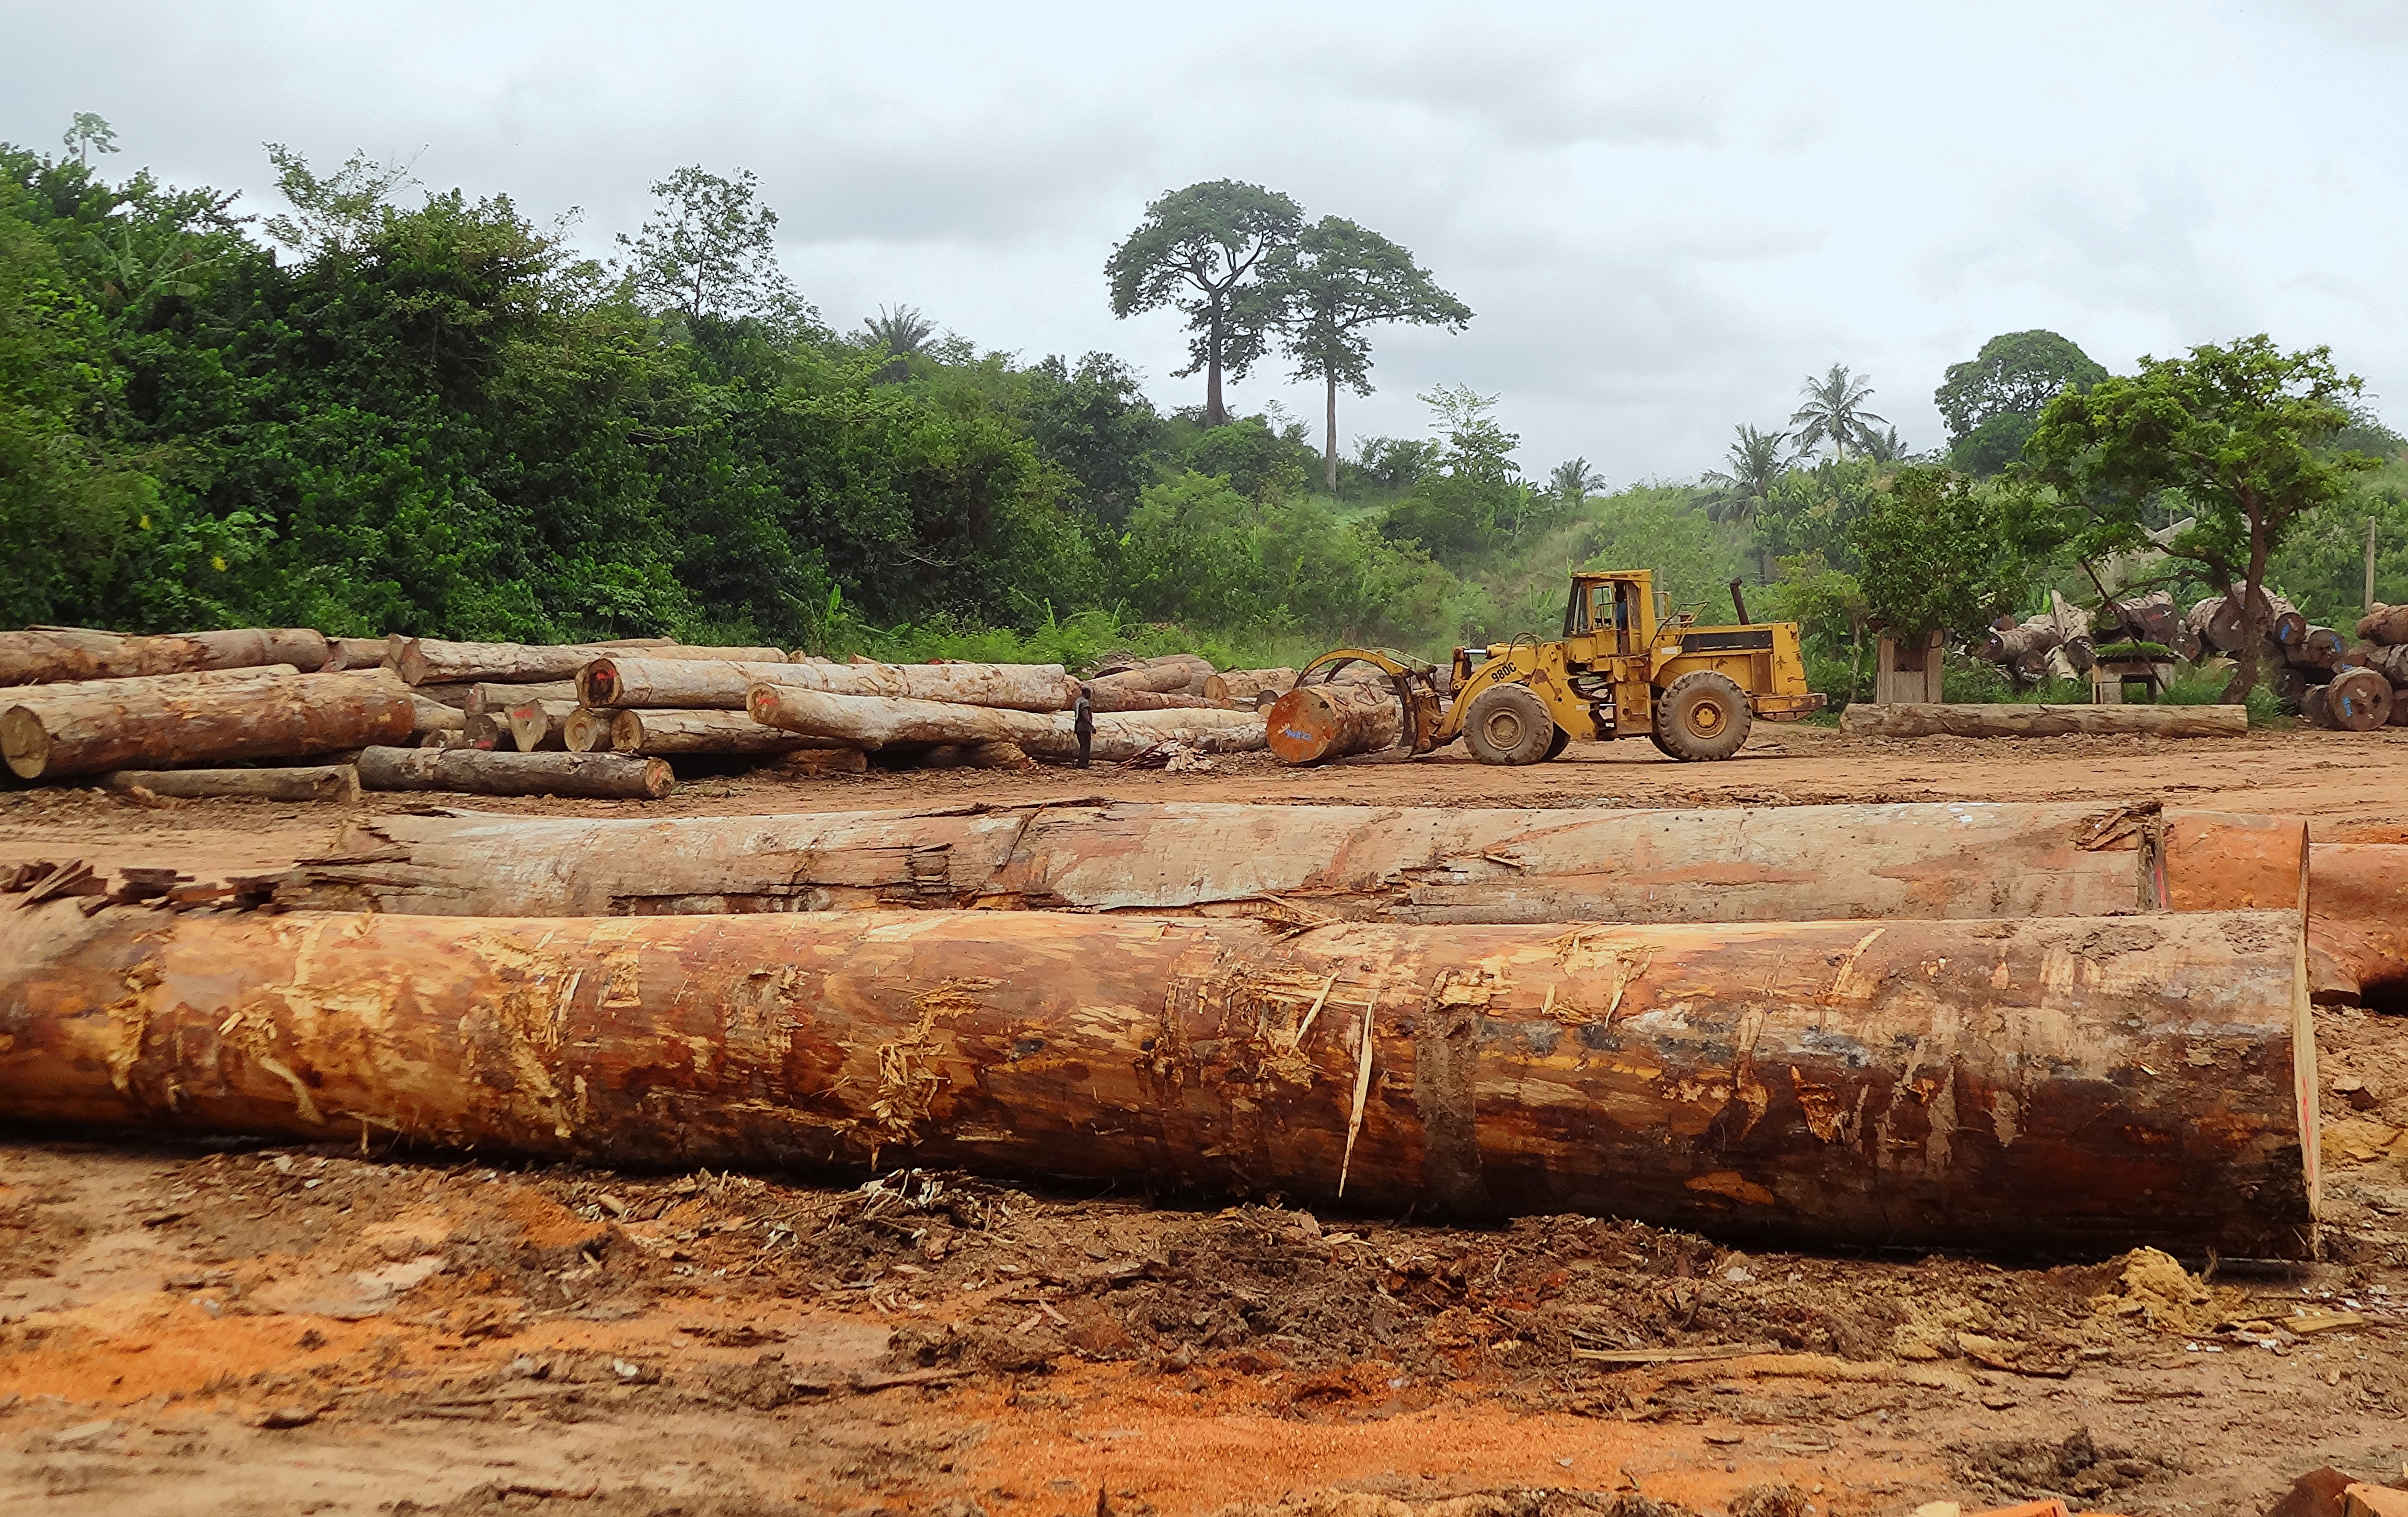 Championing rights and fair compensation for forest communities in Ghana